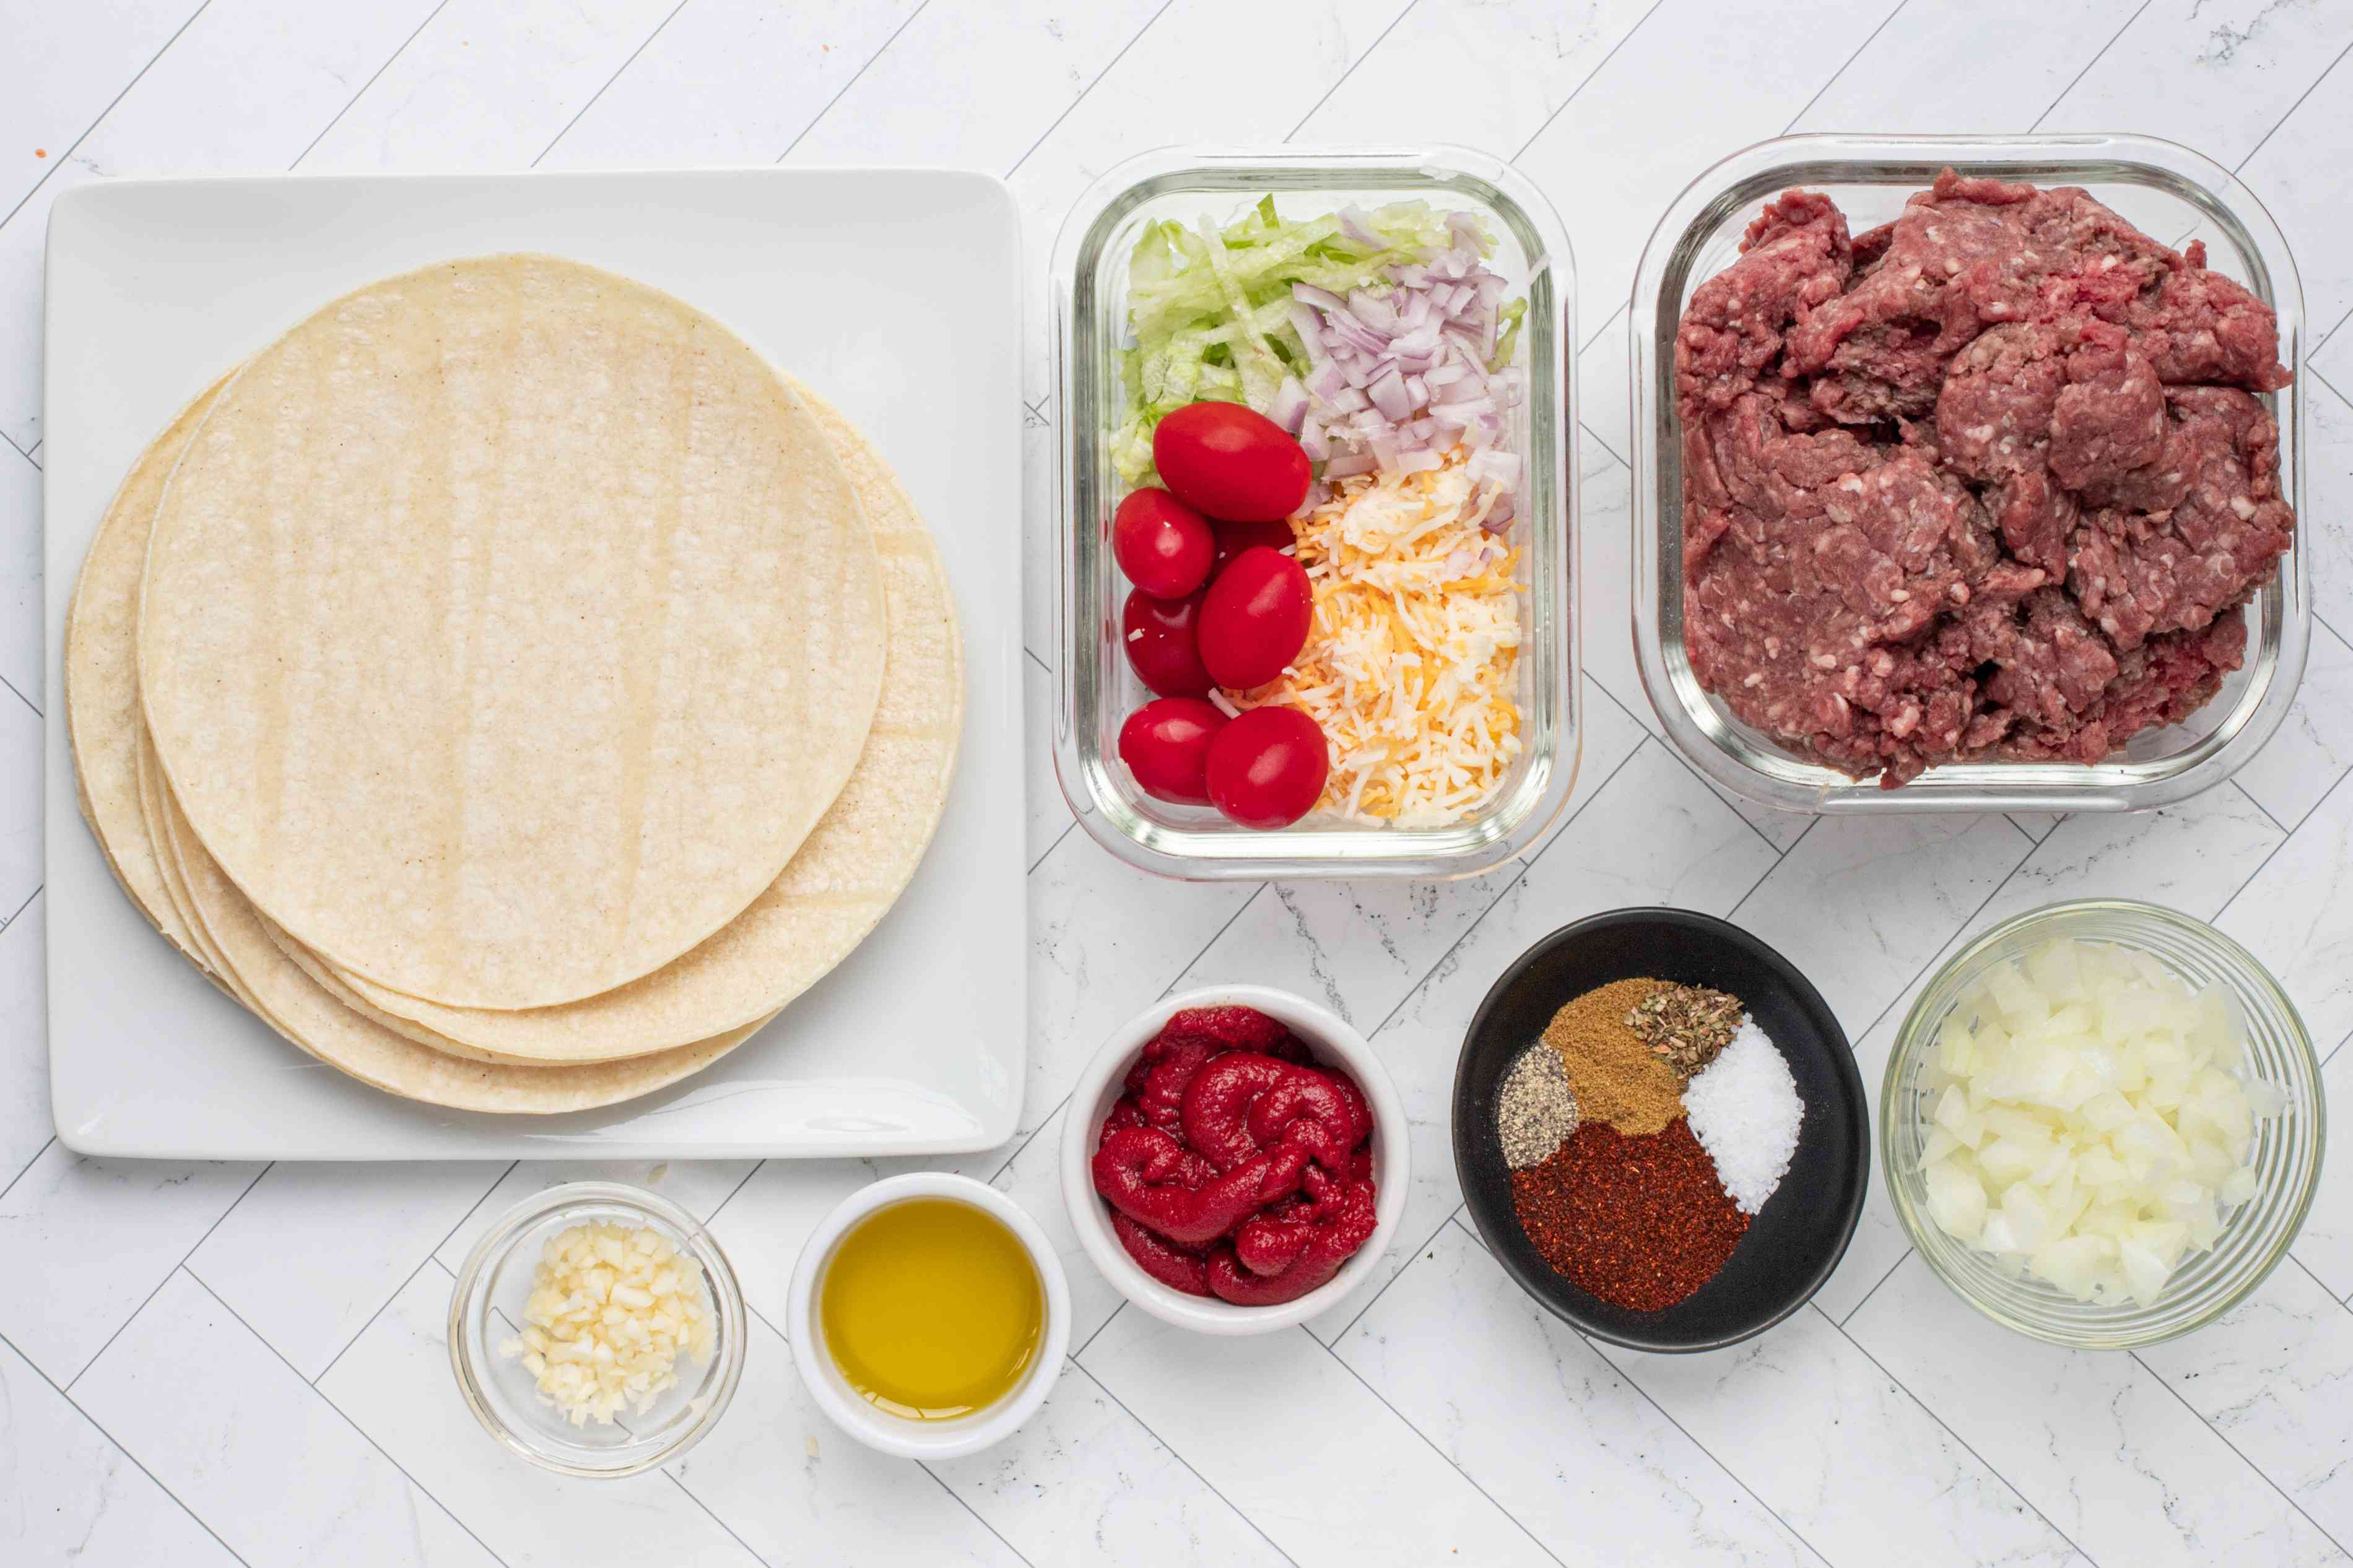 ingredients for best tacos